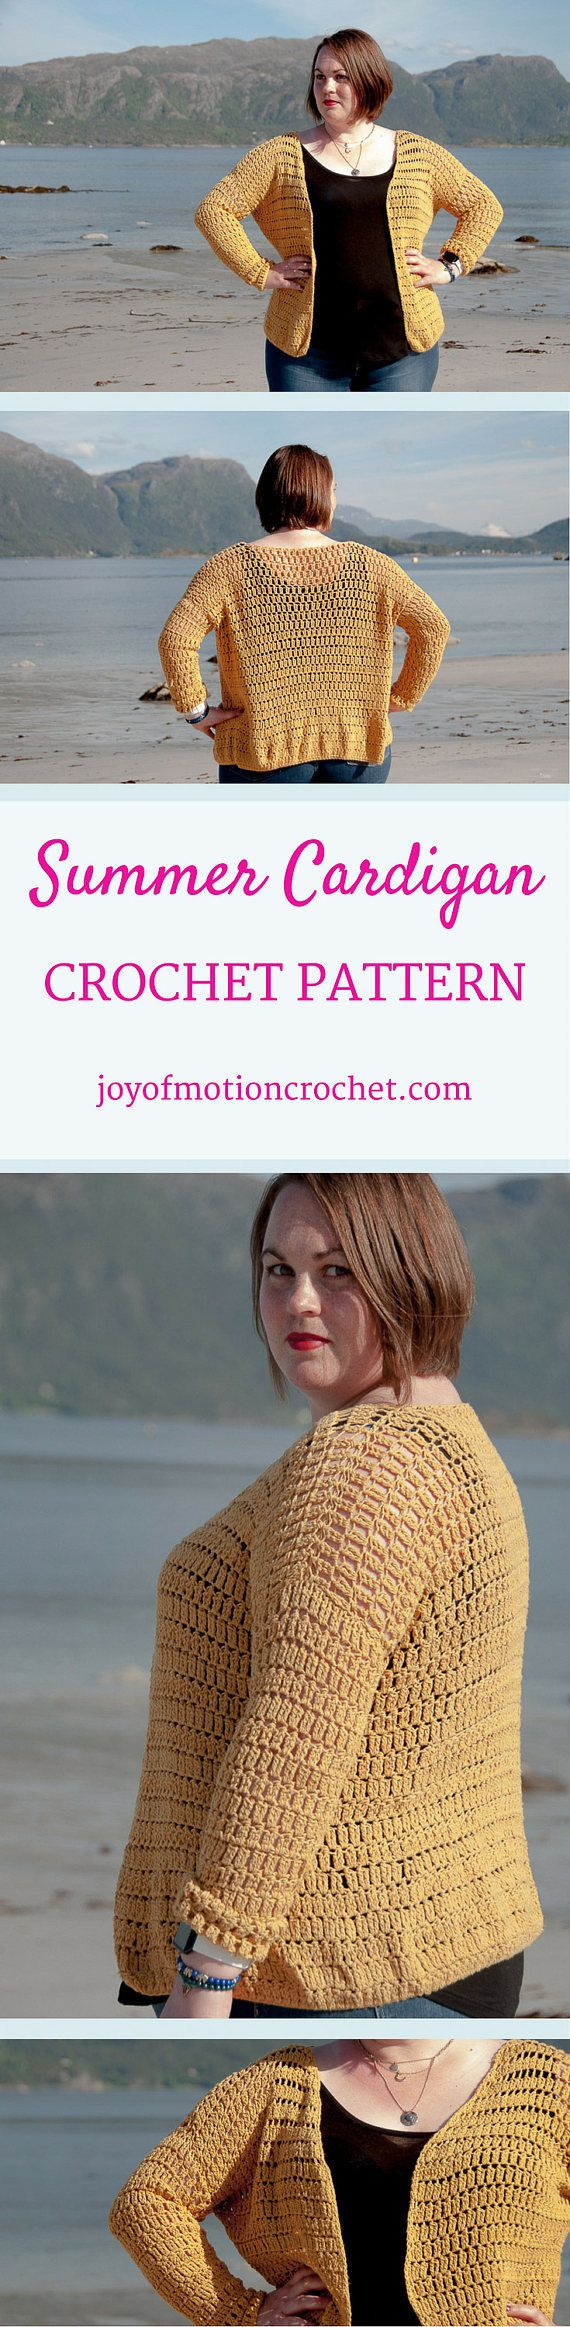 Summer Cardigan Crochet Pattern ★ Crochet pattern for the Summer Cardigan, a lacy and quick cardigan to make. ★ Perfect to make for the warmer season. ★ S-XL. ★ Skill level: EASY ★ Language: English / US crochet terms. The Summer Cardigan crochet pattern is a pattern that's perfect for summer. It's designed with cotton yarn, which makes it a good fit for the warmer season. It stitches up quickly and you'll be able to make it in just one week or less with crocheting a few hours each day...